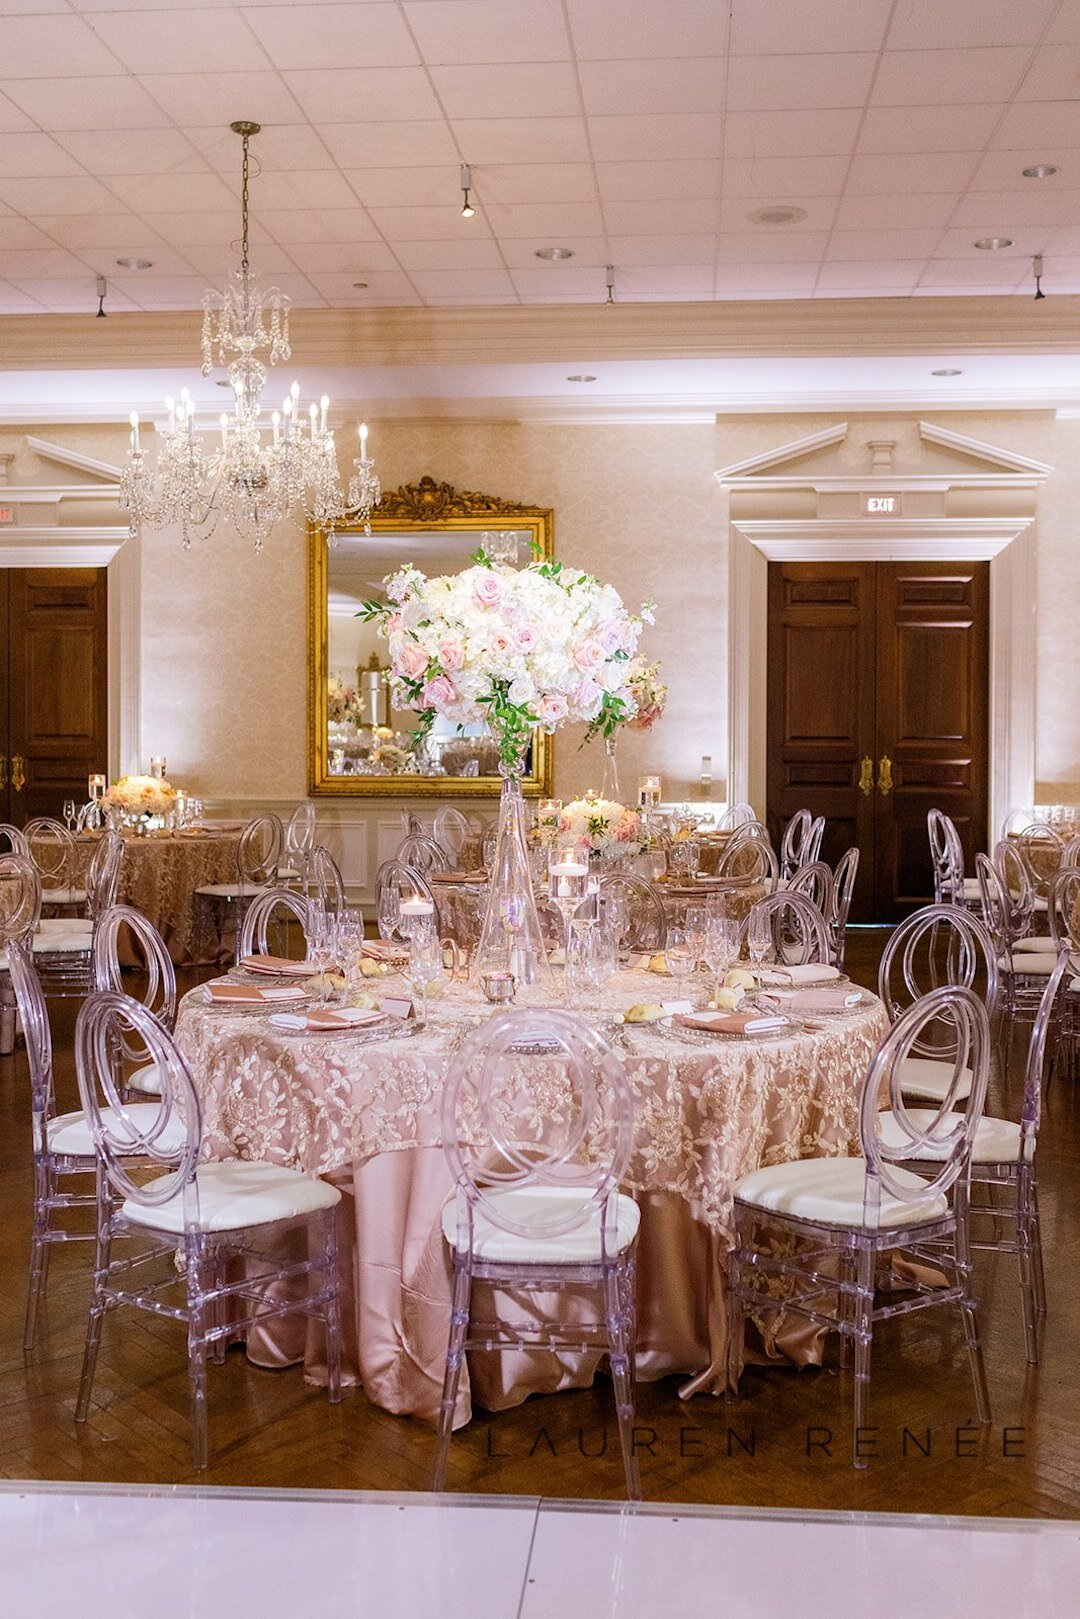 Ballroom wedding in with blush decor : Romantic Blush Wedding at the Pittsburgh Field Club planned by Exhale Events. See more at exhale-events.com!